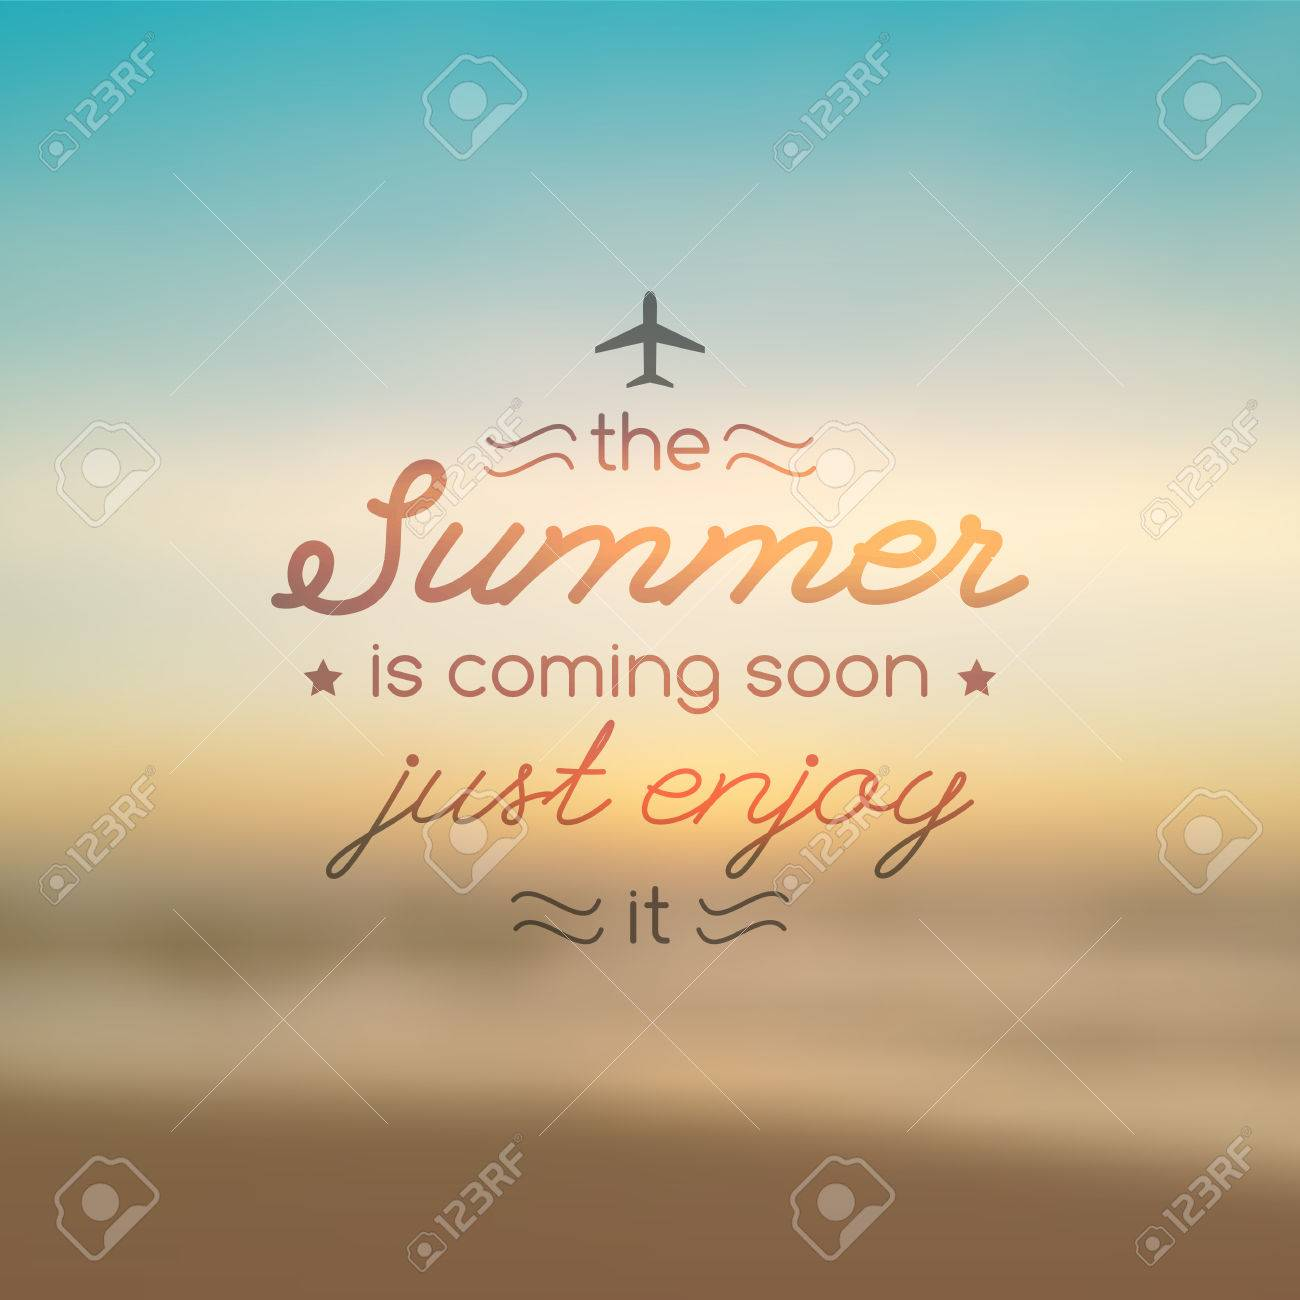 Great Summer Is Coming Soon, Vector Text On Blurred Background Of Sunrise And Sea,  For